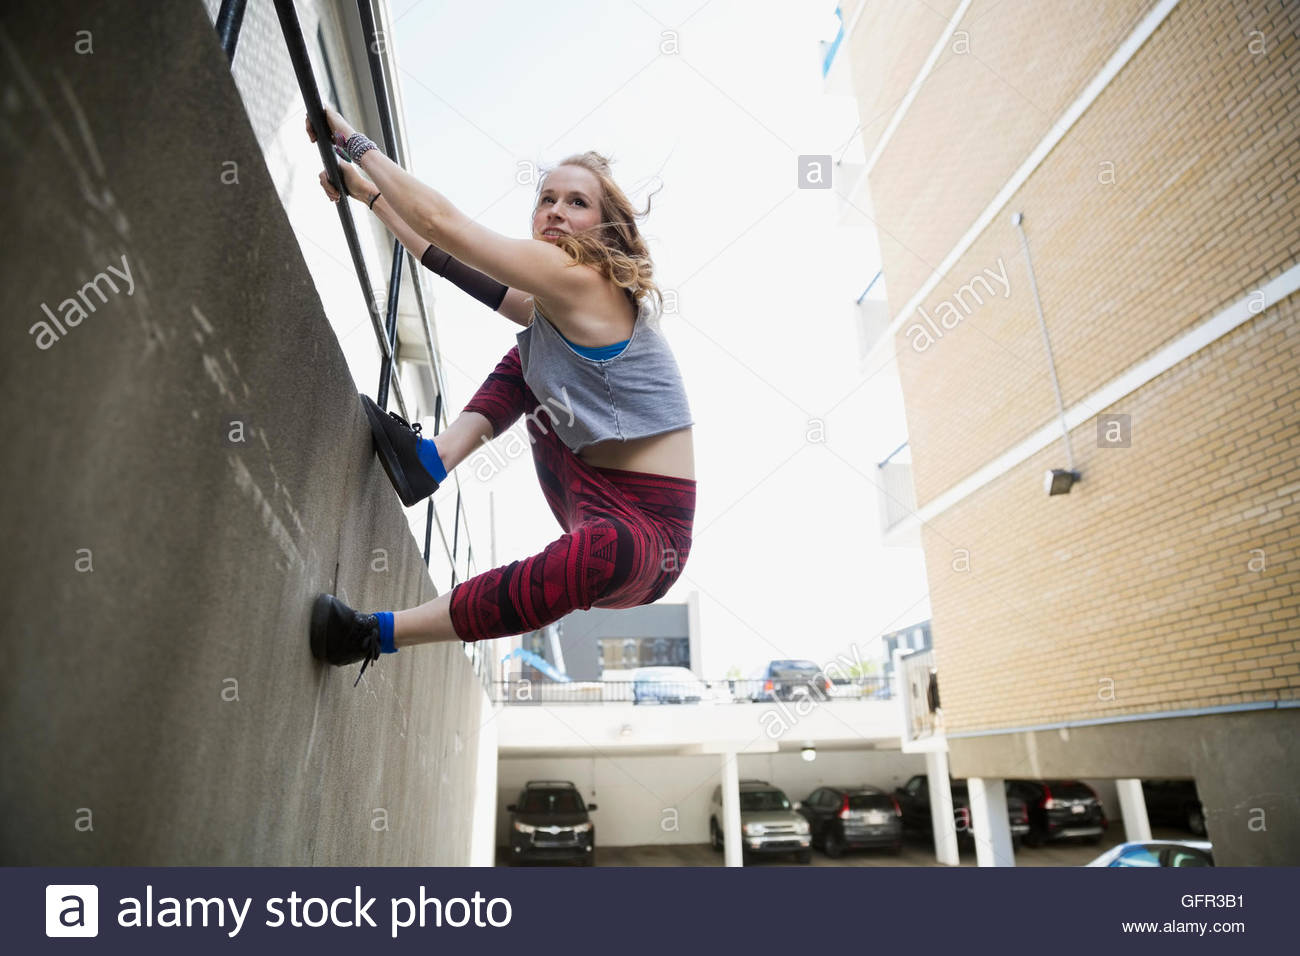 Young woman doing parkour along urban wall - Stock Image